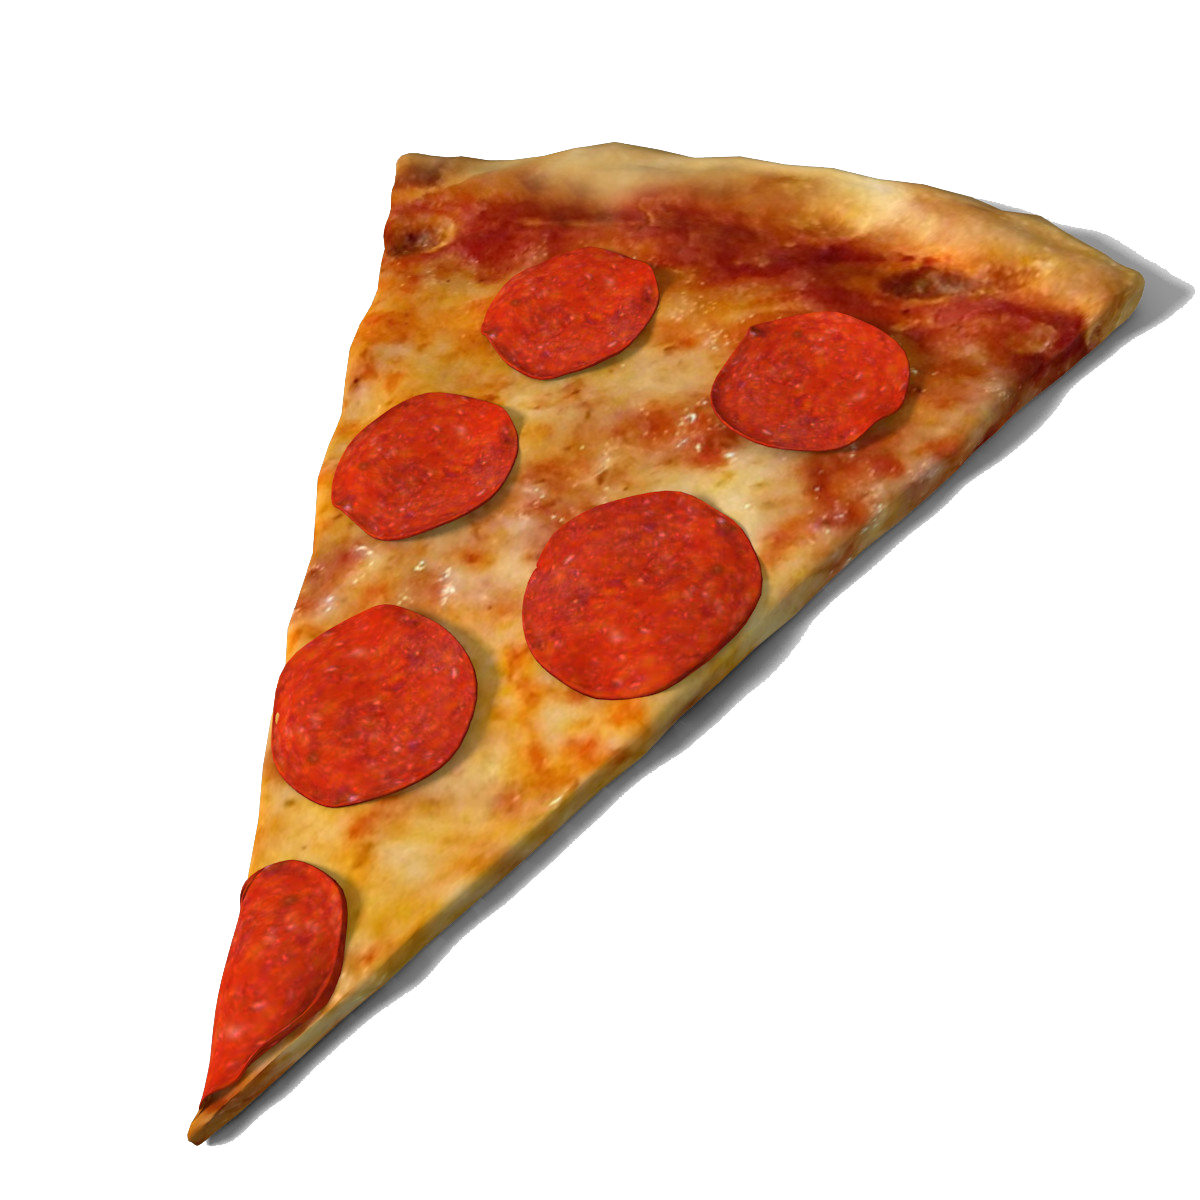 Free Png Pizza Slice - Pizza Slice Png Free Download, Transparent background PNG HD thumbnail